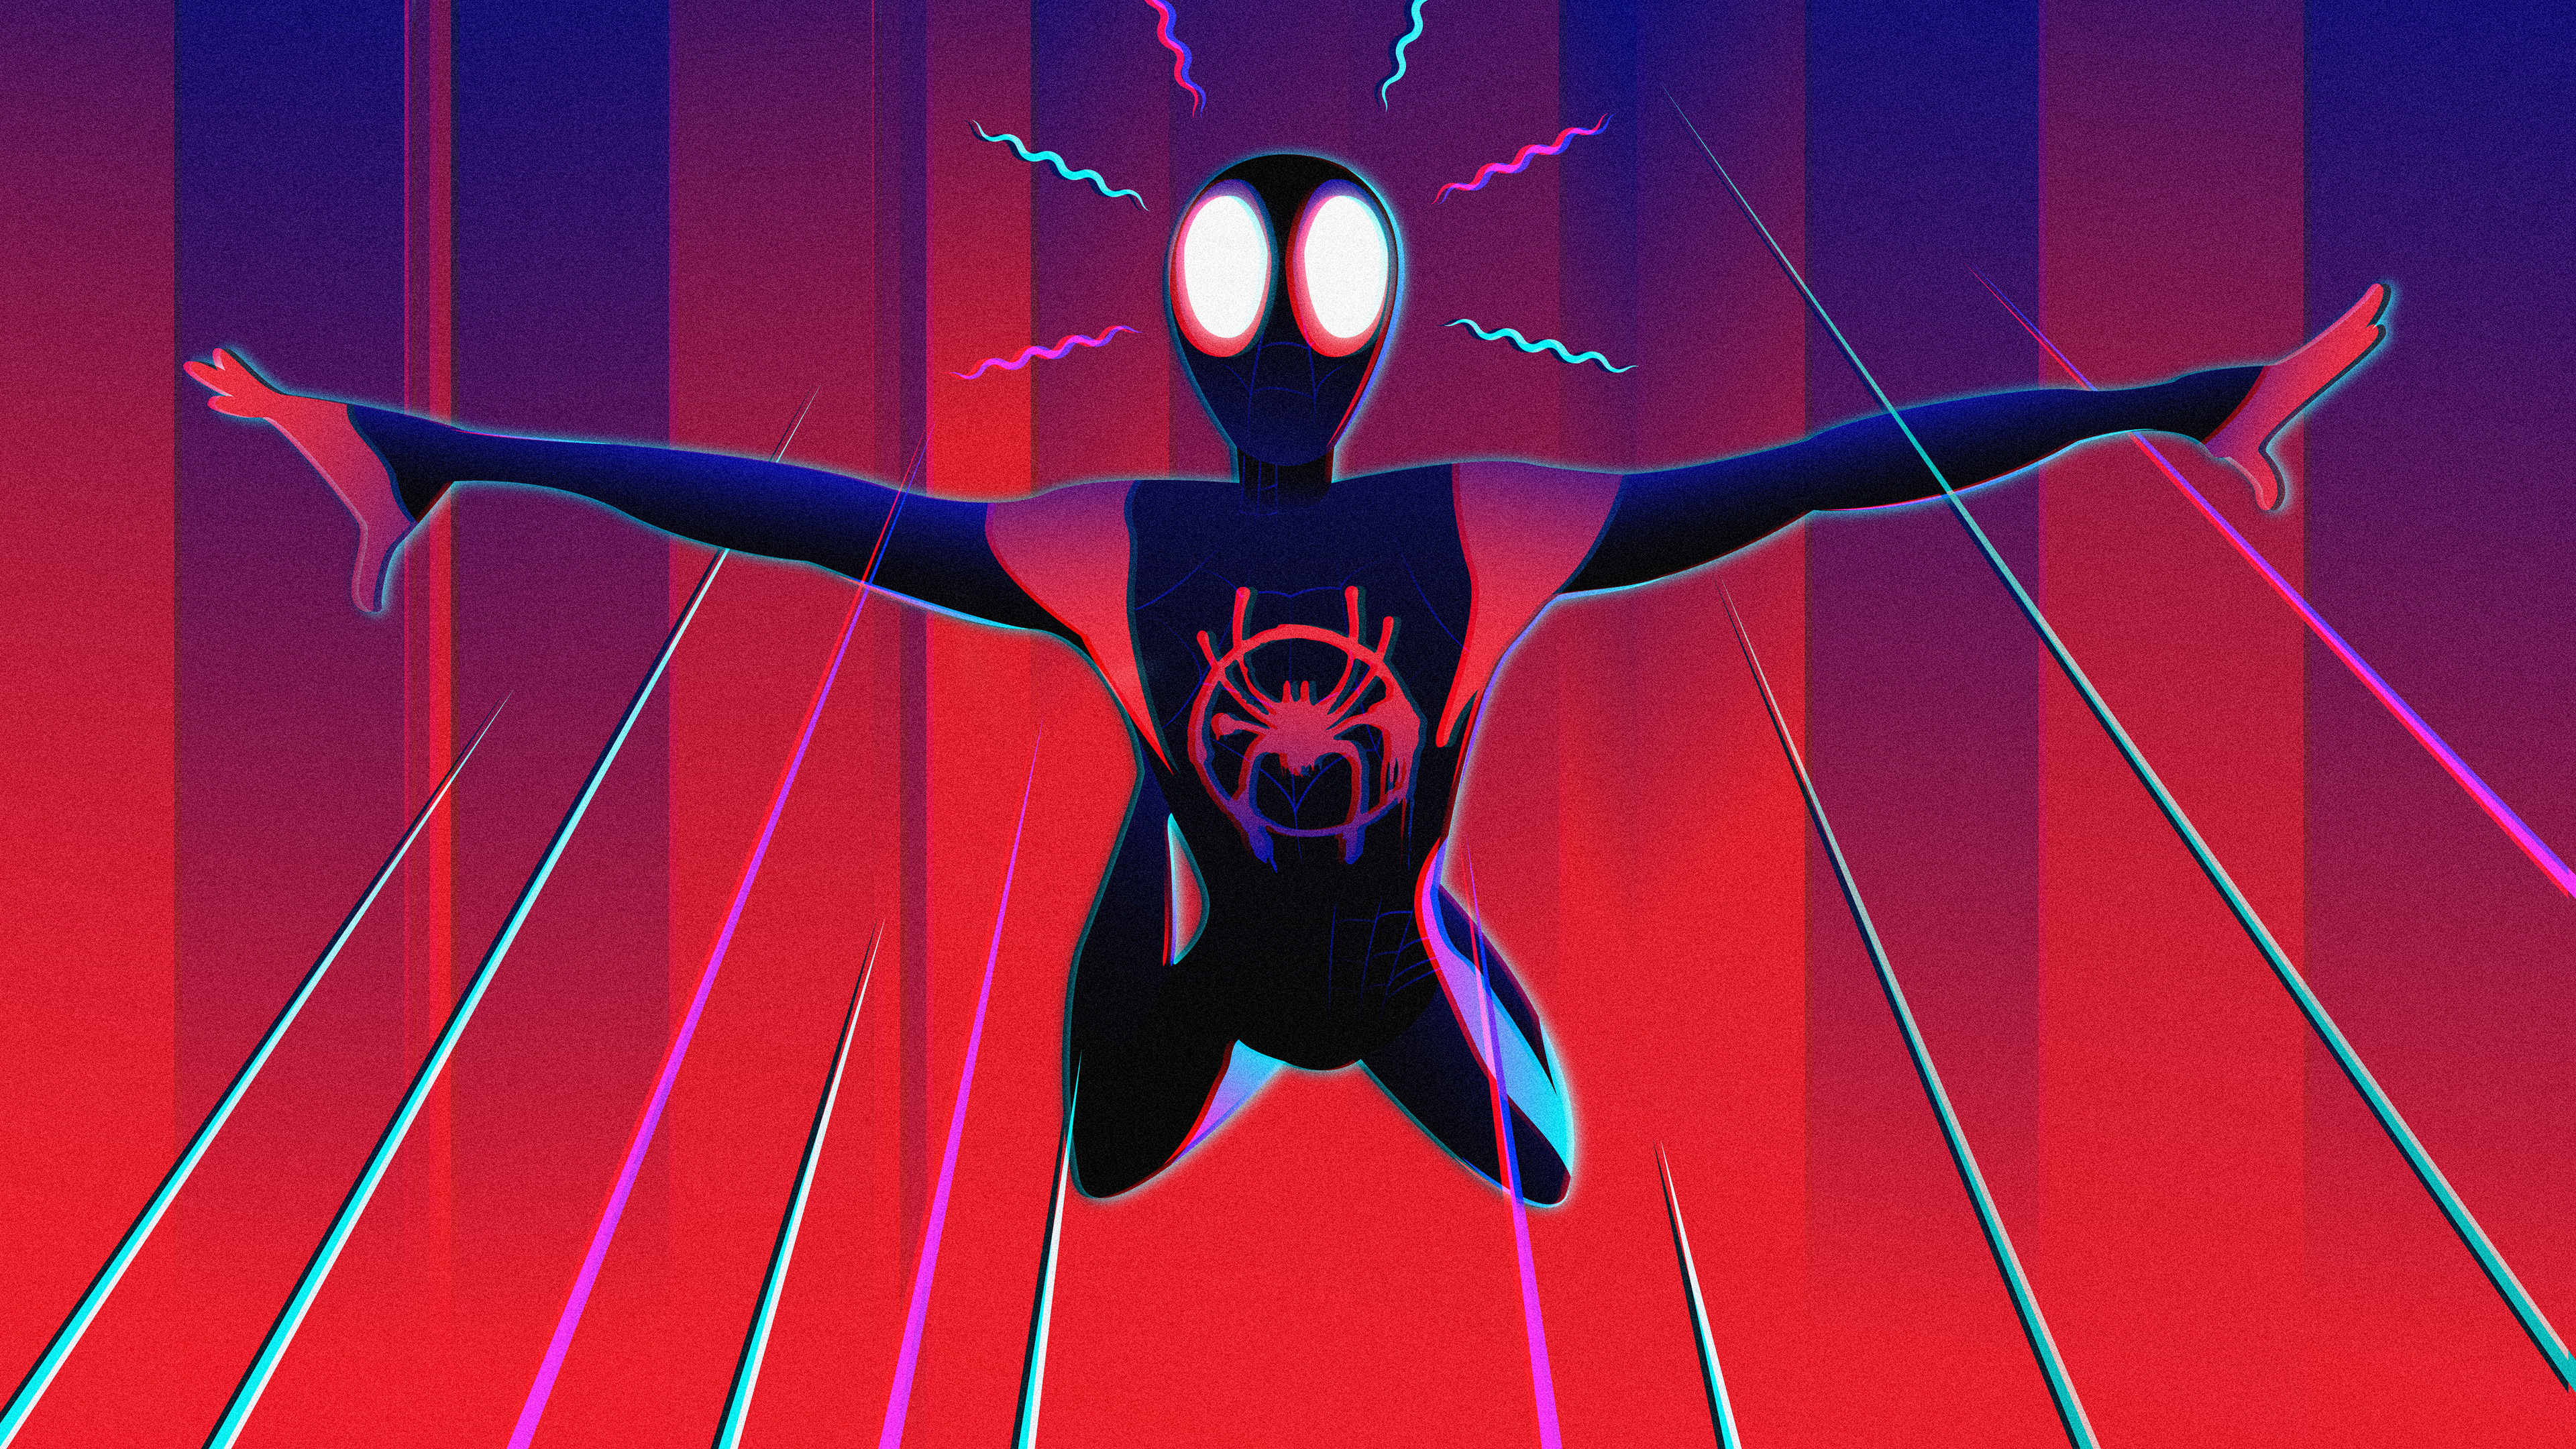 Spider Man Miles Morales 4k Wallpapers Spider Man Into The Spiders 3840x2160 Wallpaper Teahub Io